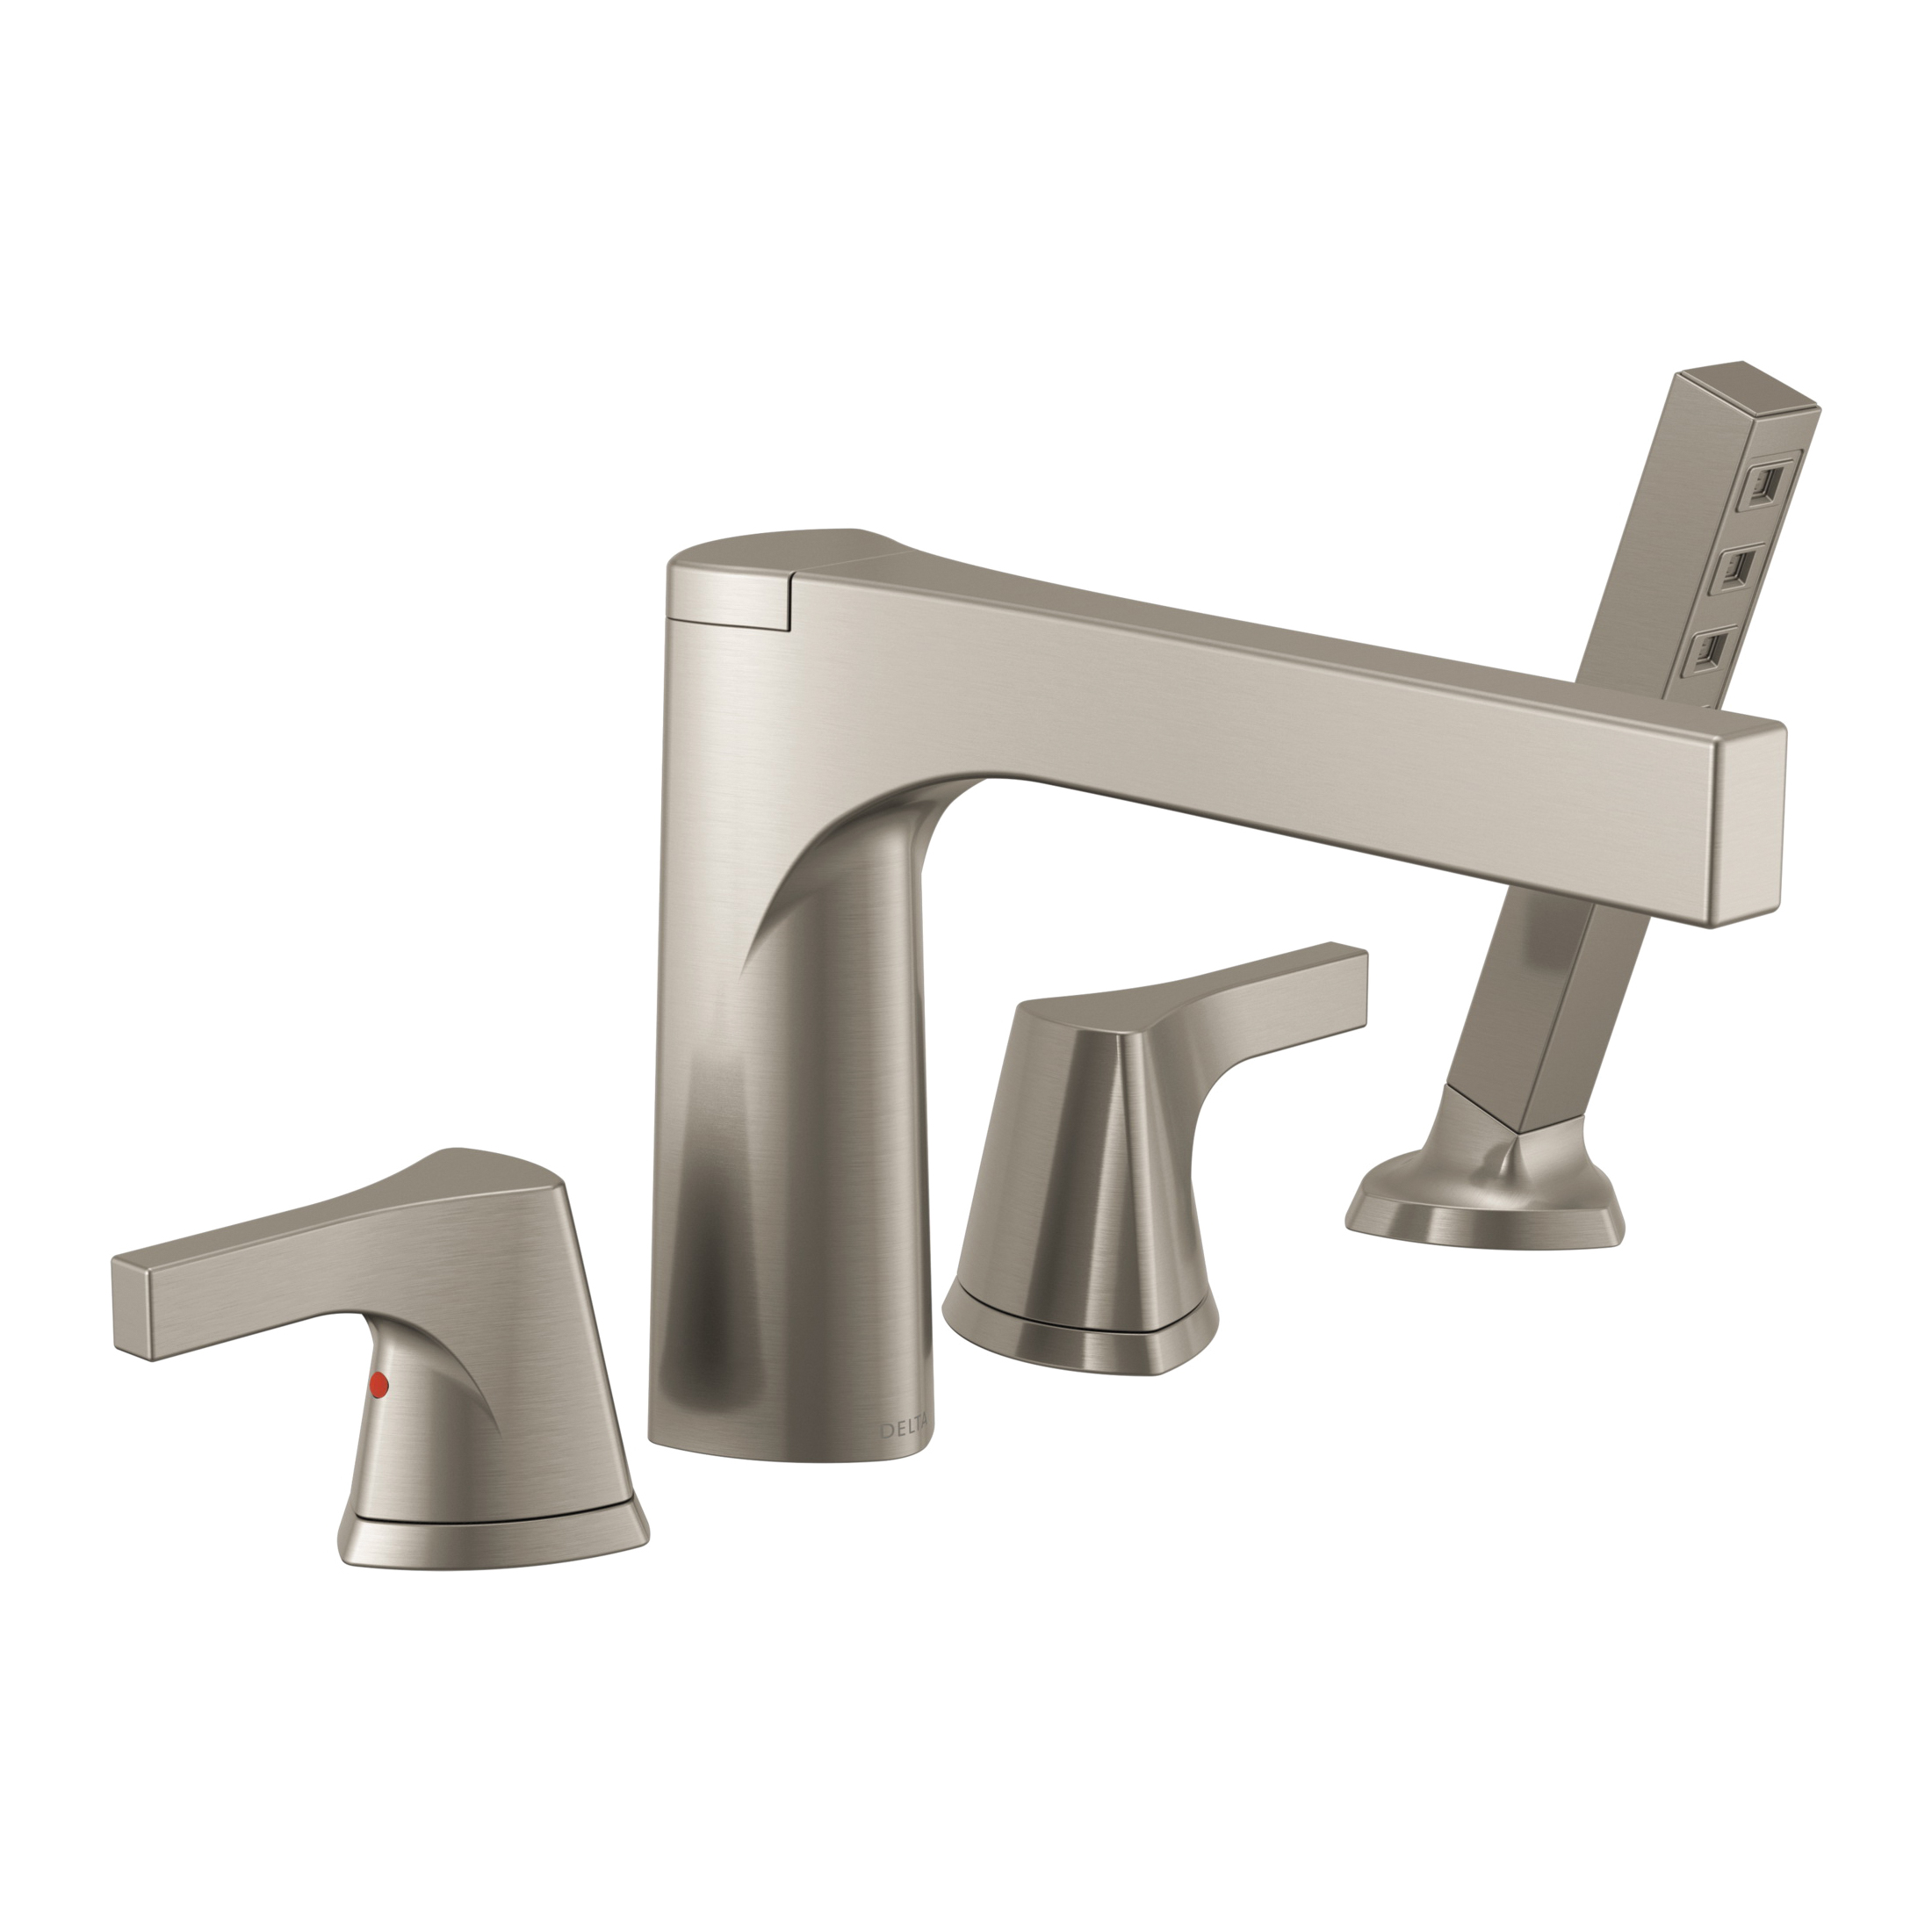 DELTA® T4774-SS Zura™ Roman Tub Trim, 2 gpm, 11 to 16 in Center, Stainless Steel, 2 Handles, Hand Shower Yes/No: Yes, Domestic